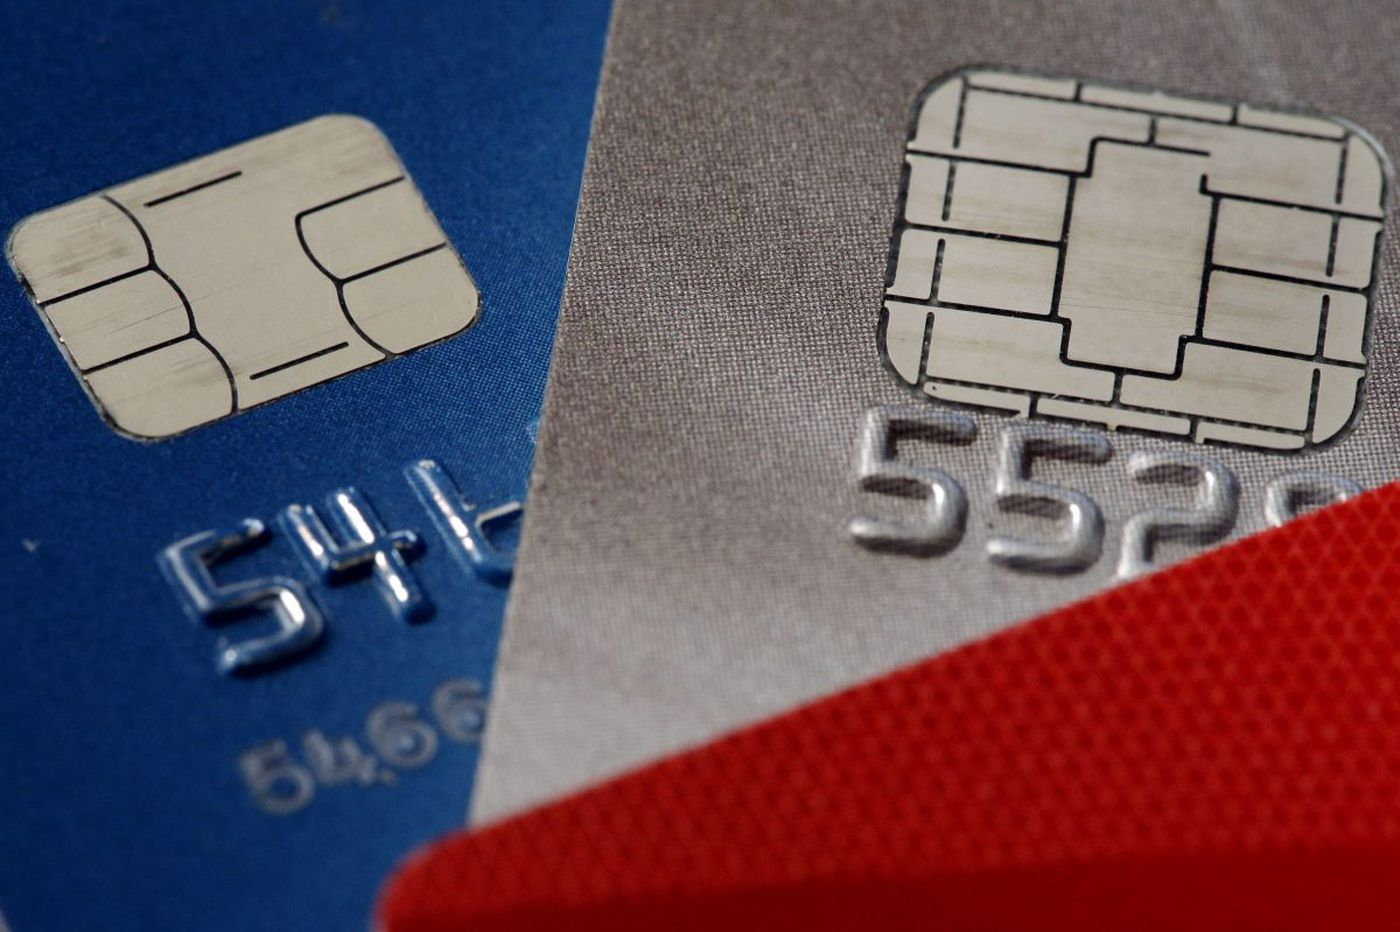 The plan to make chip credit cards less annoying